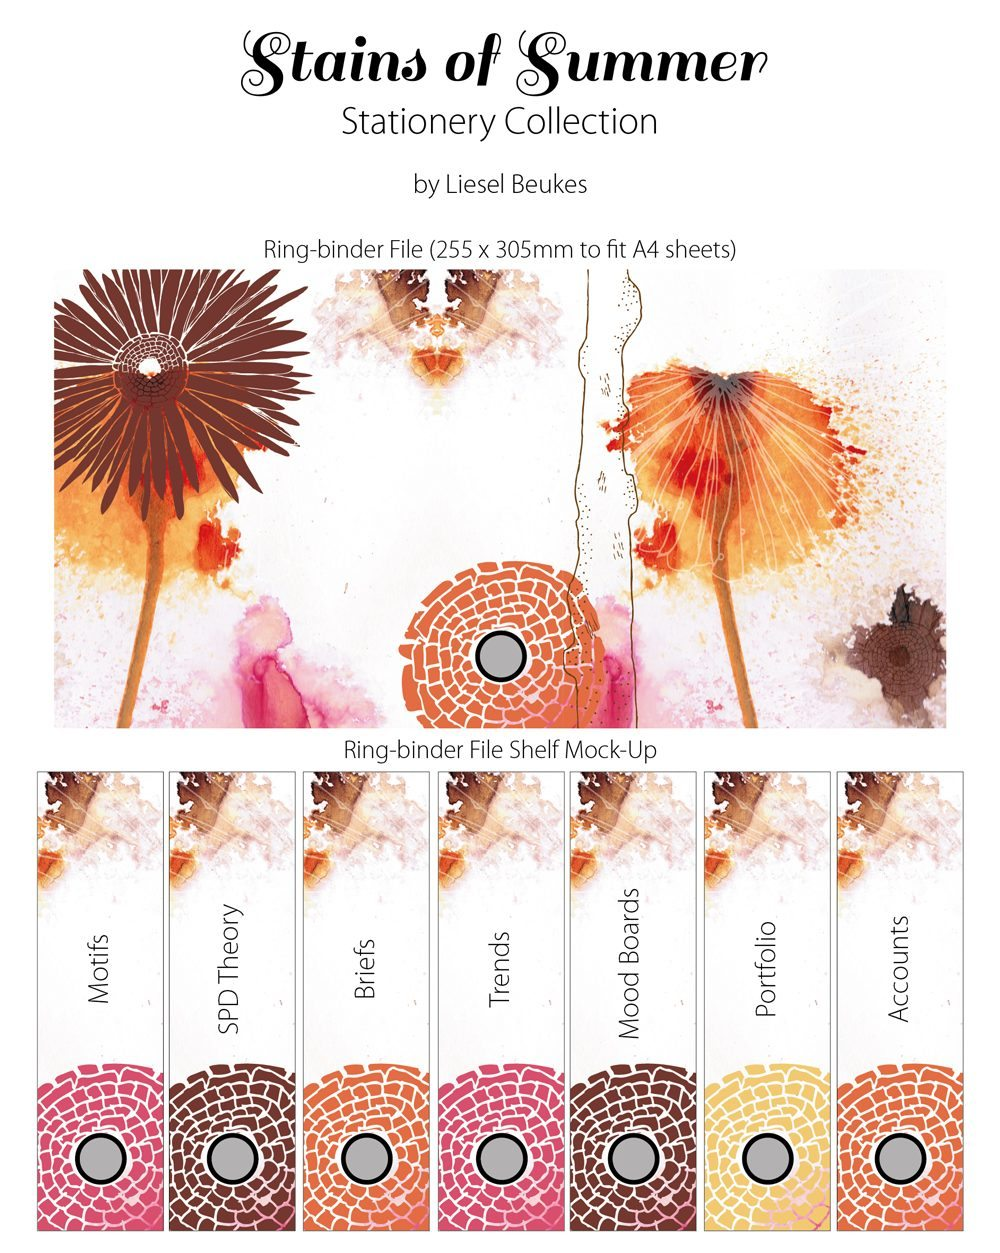 Imagine a Stains of Summer Stationery Collection